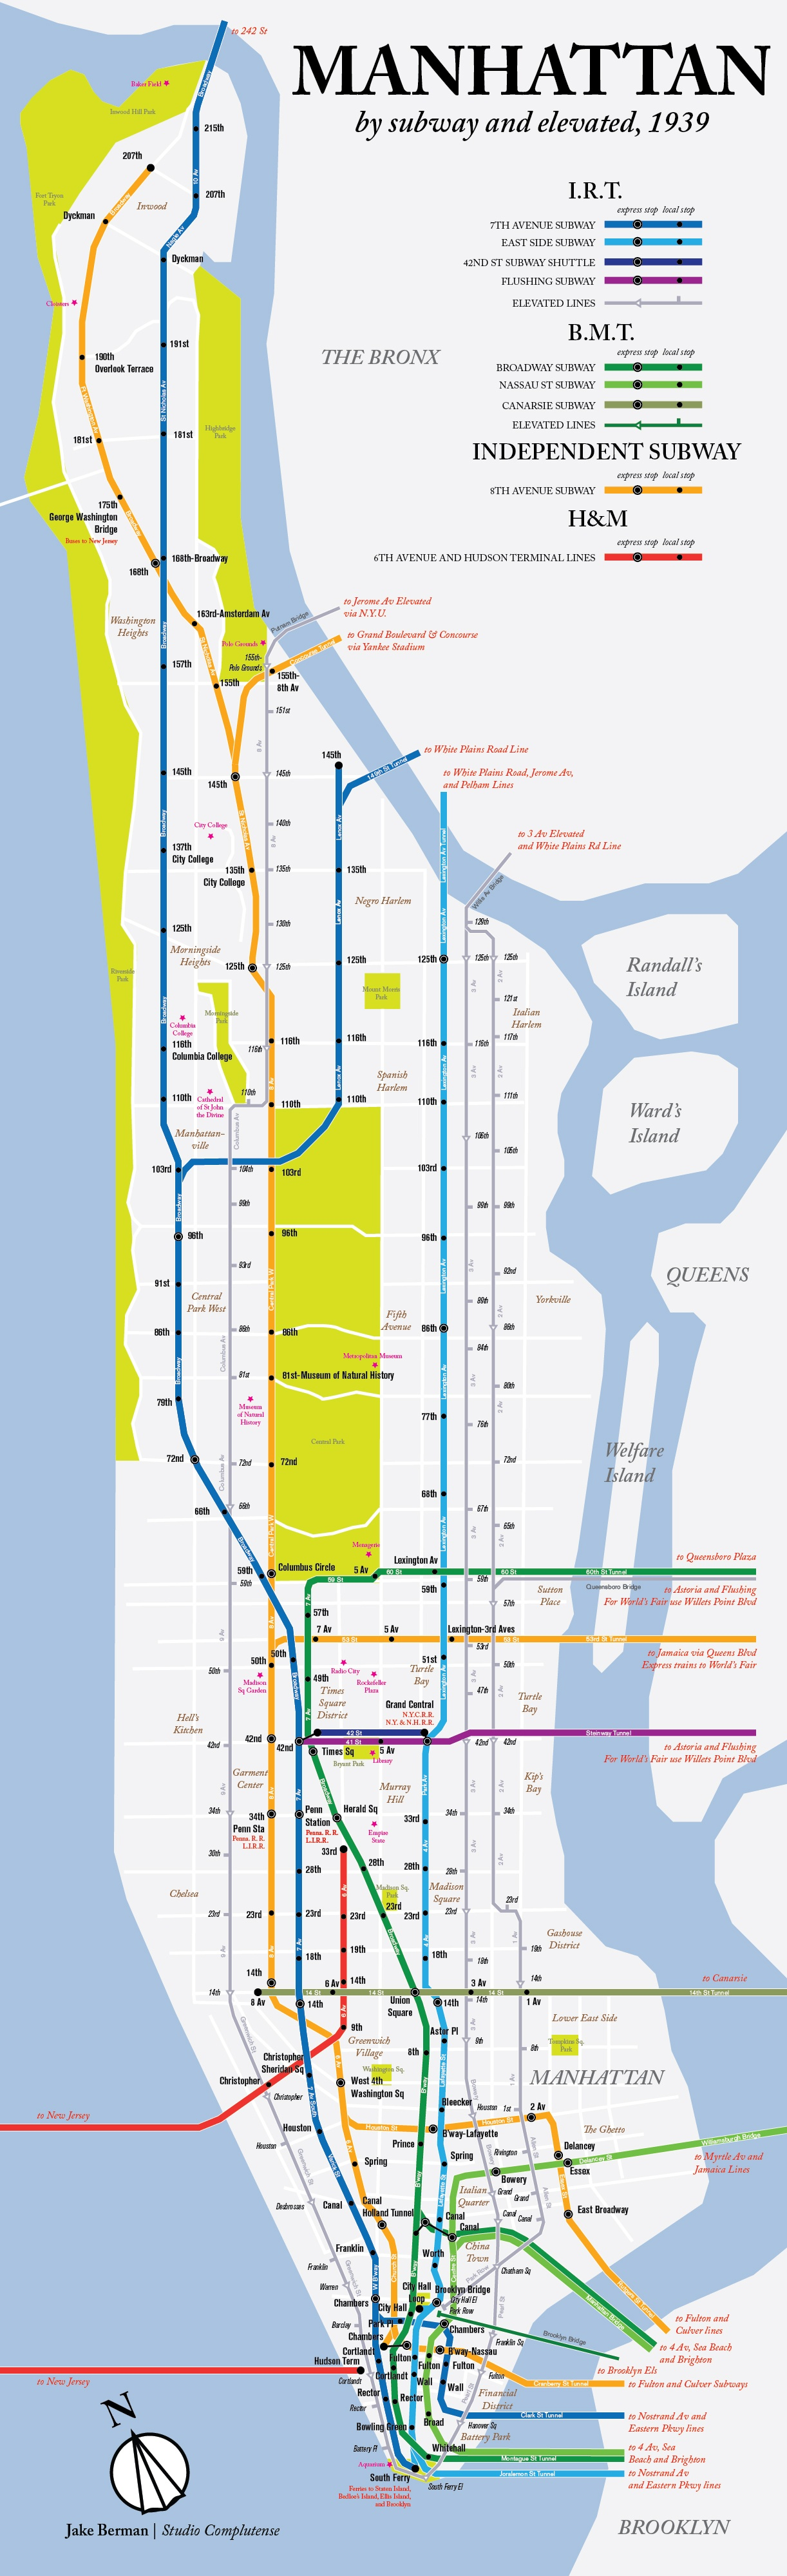 Subway Map In Manhatten.Map Here S What The Nyc Subway System Looked Like In 1939 6sqft